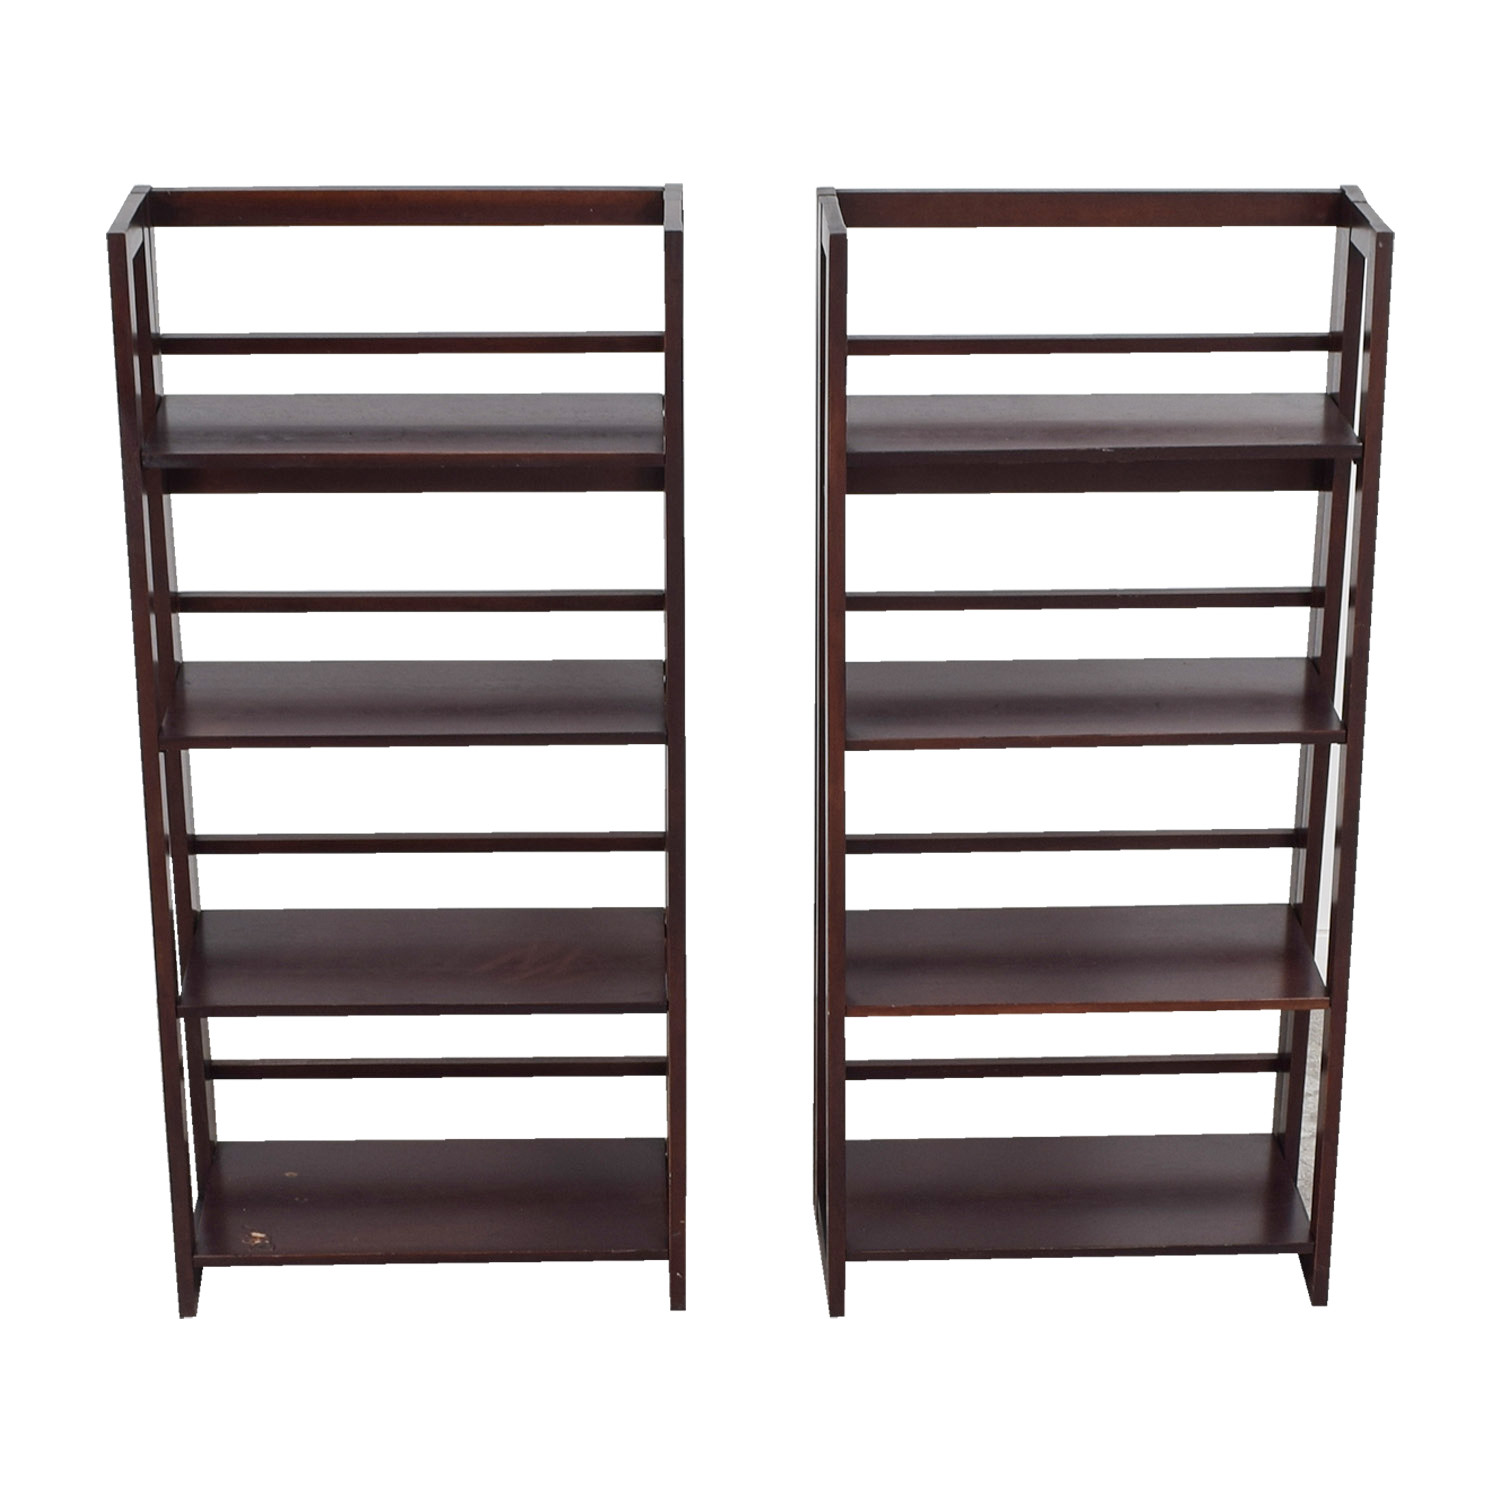 Crate & Barrel Crate & Barrel Cherry Bookcases on sale